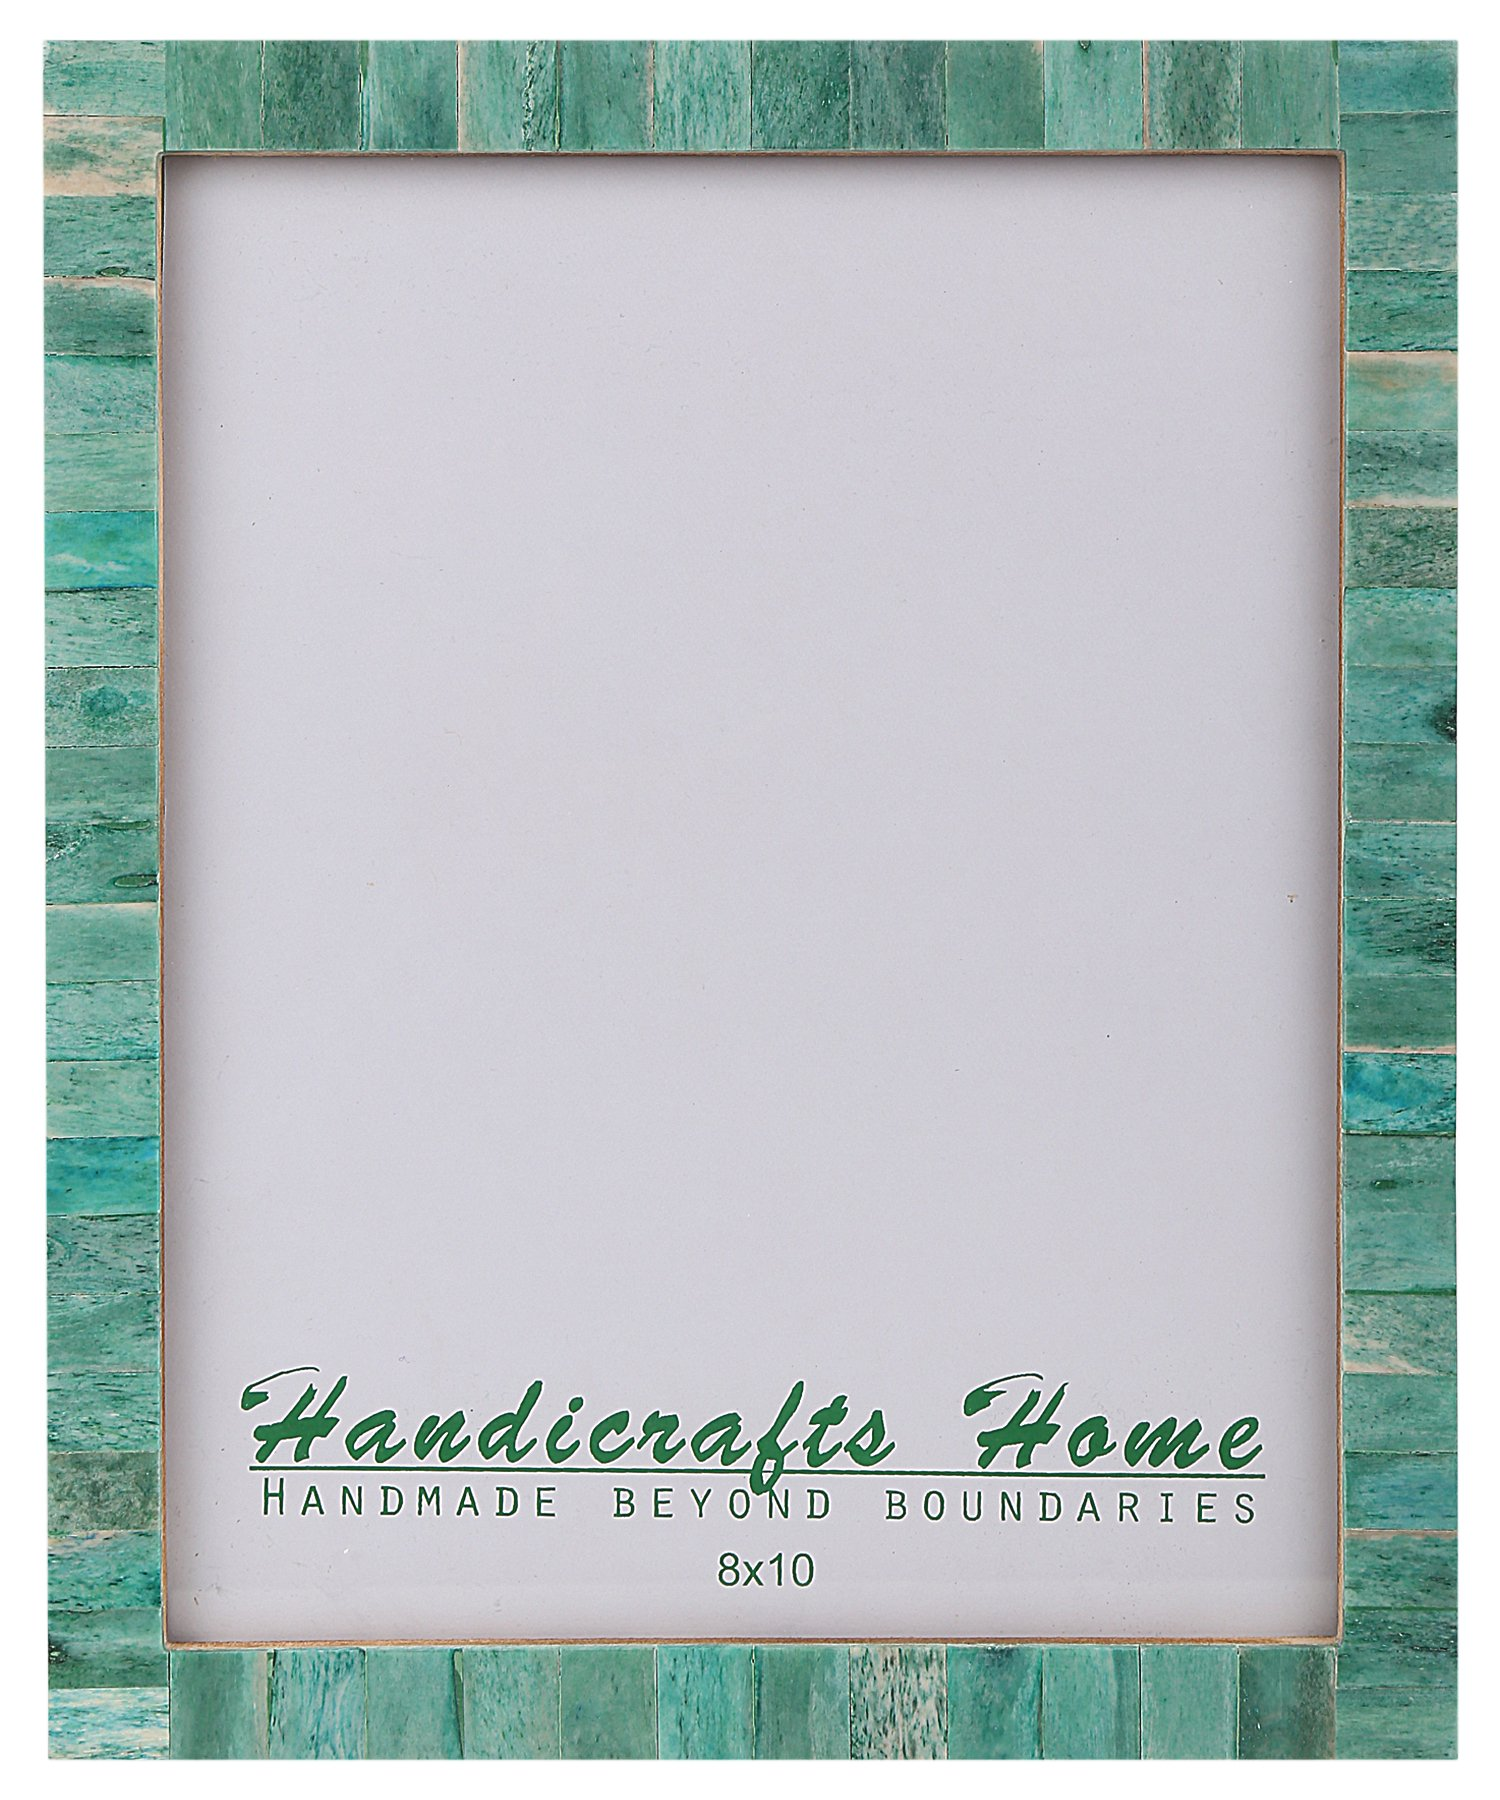 8x10 Bone Picture Frames Chic Photo Frame Handmade Vintage from Handicrafts Home (8x10 Inches, Green)